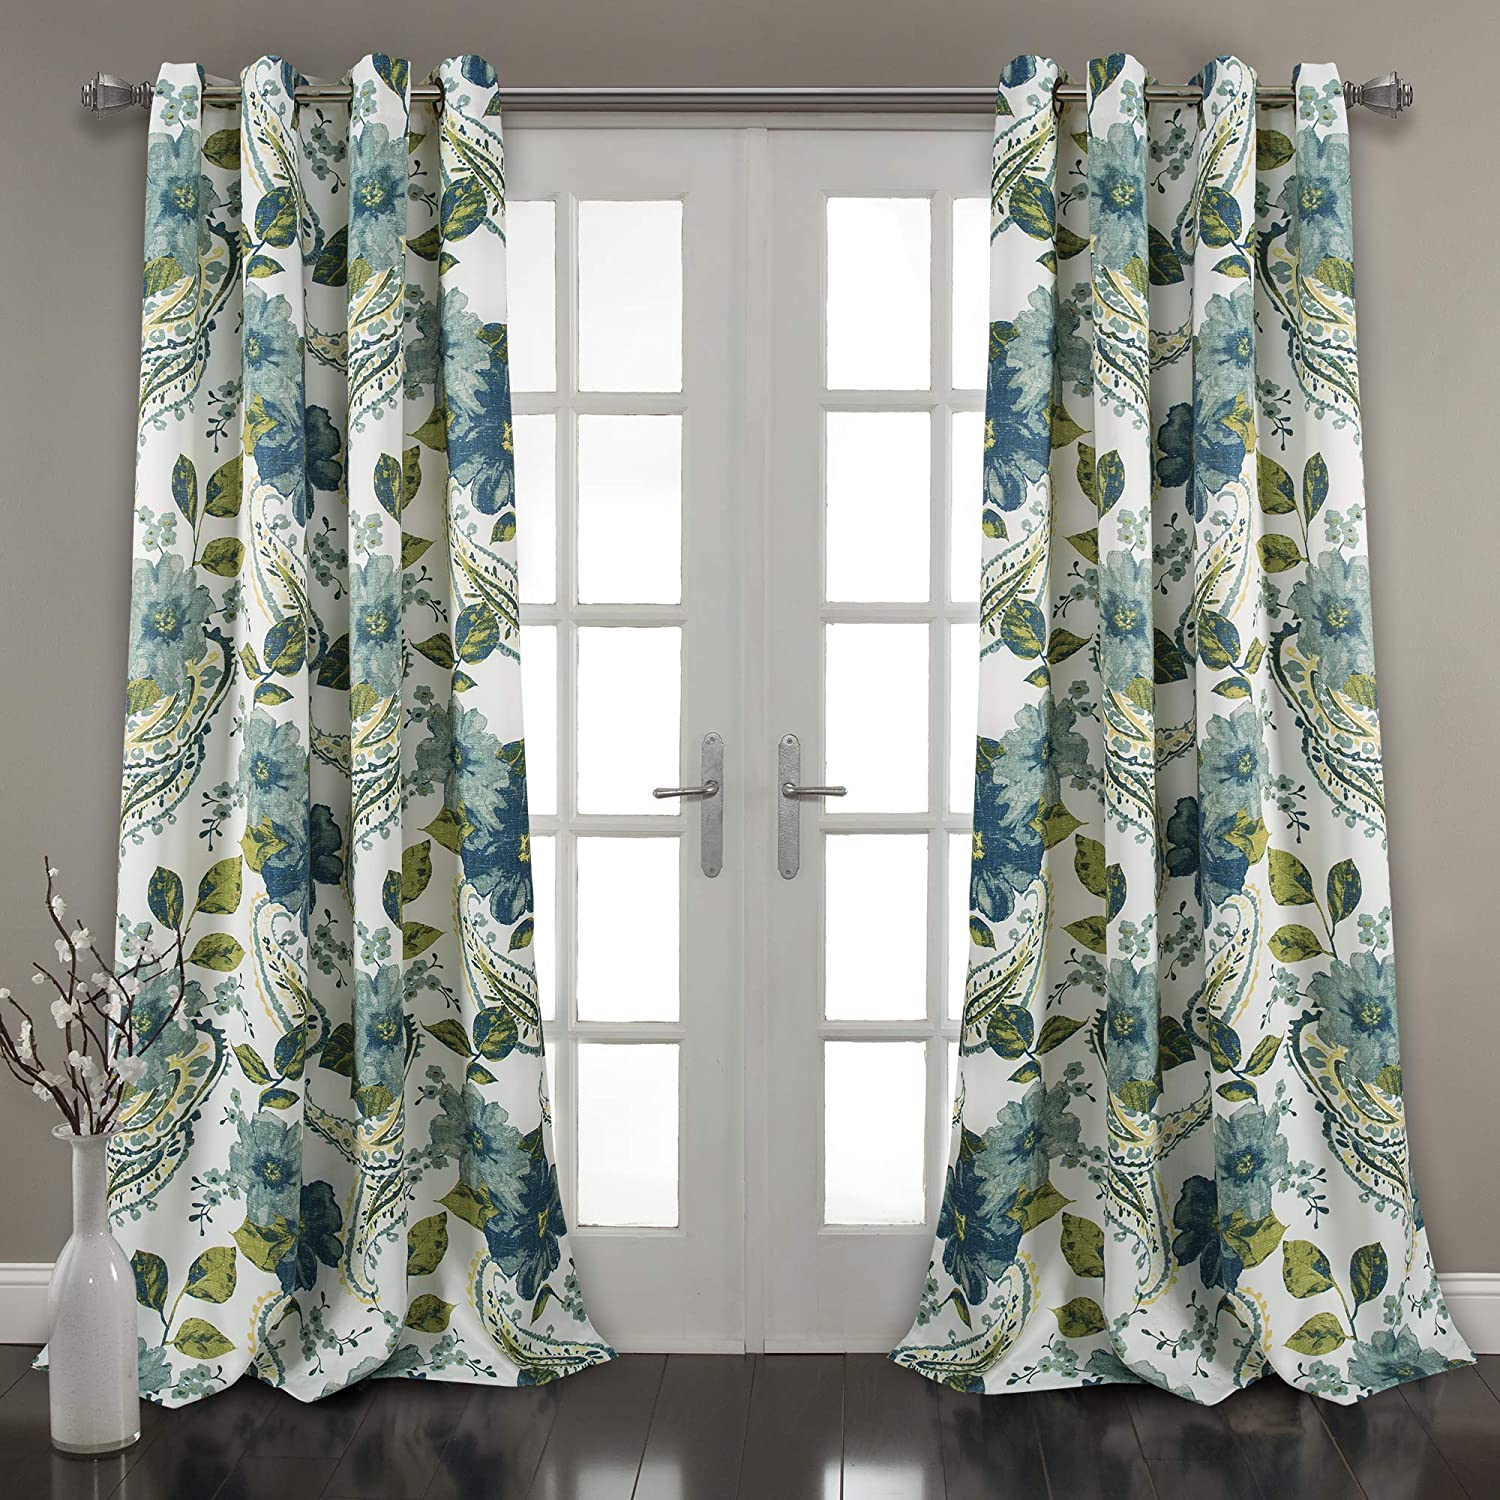 "Lush Decor Floral Paisley Window Curtain Panel (Set of 2), 84"" x 52"" Pair, Blue"